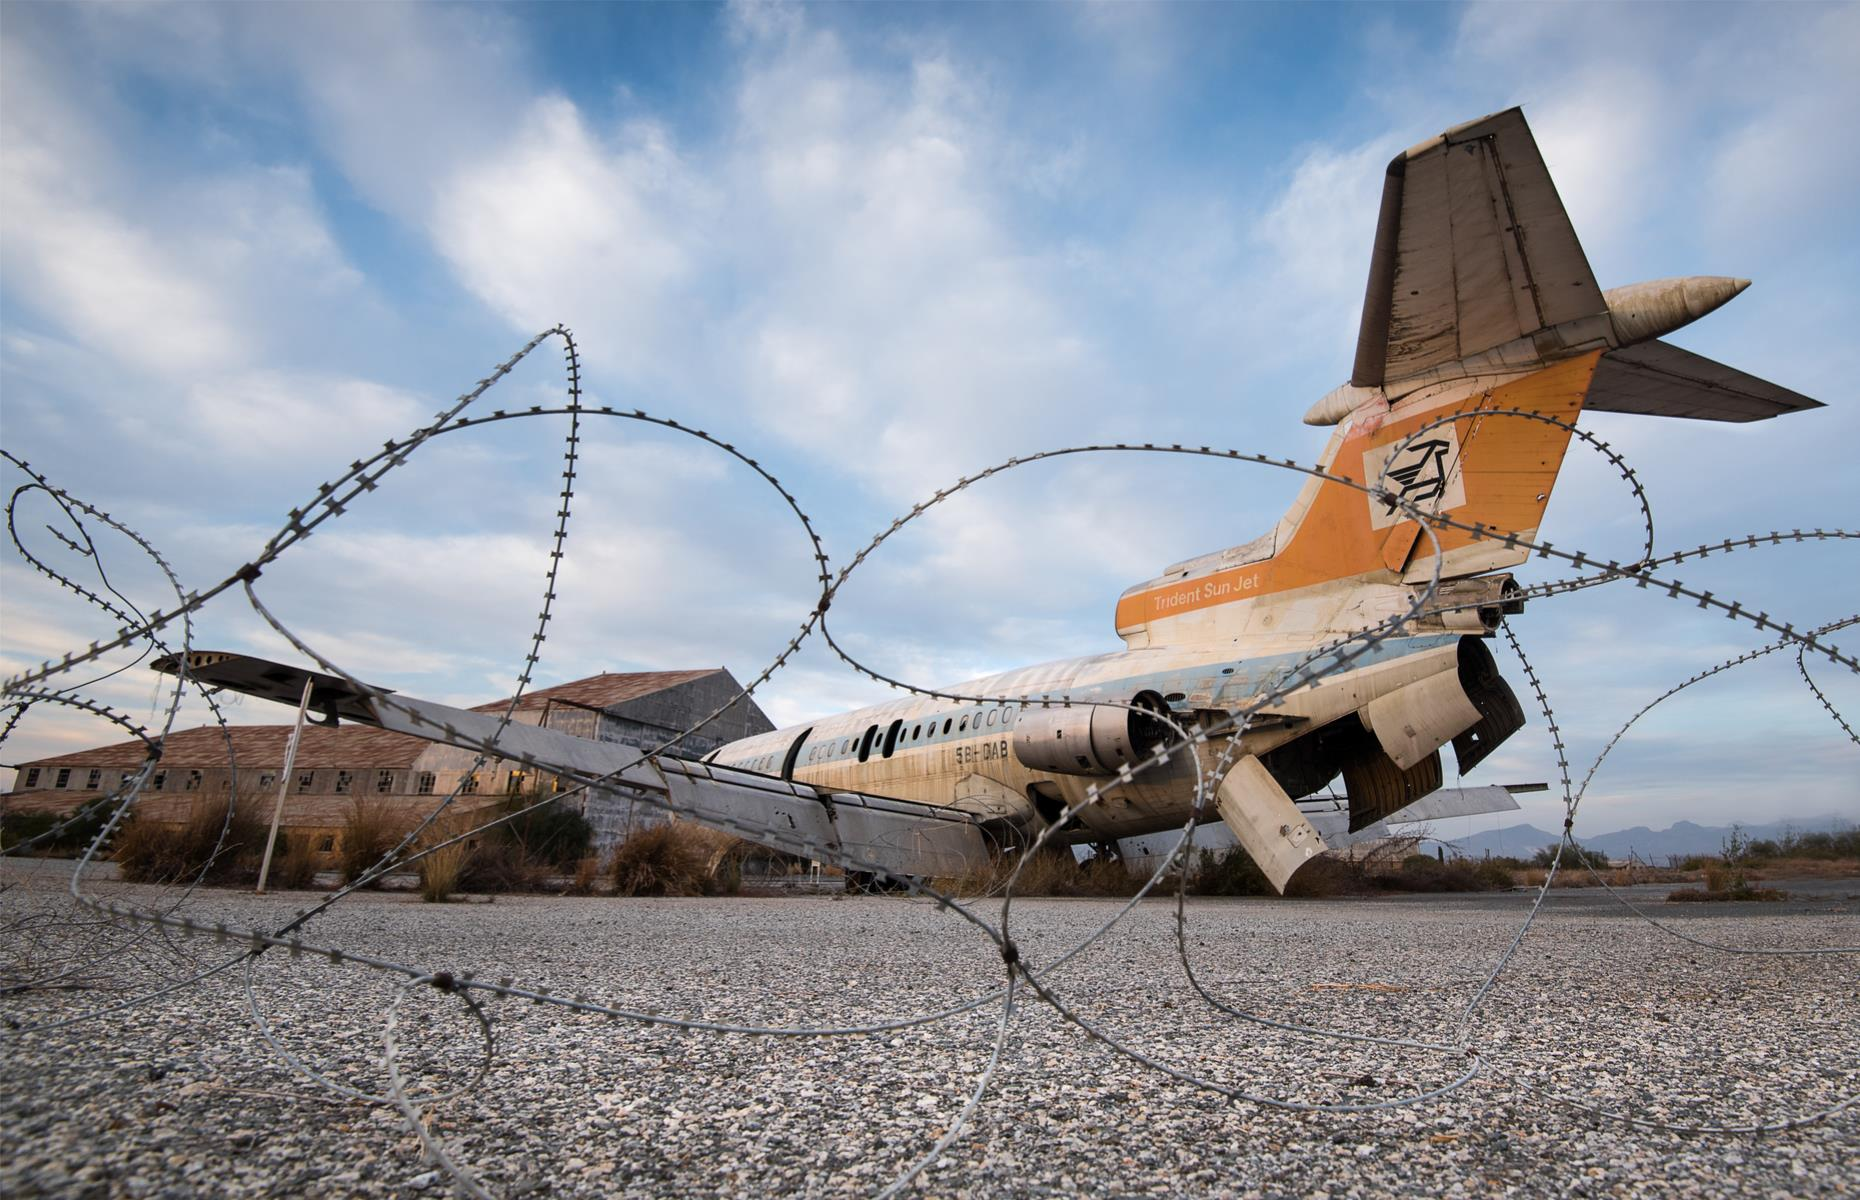 Slide 36 of 51: Abandoned houses, shops and even an airport remain untouched and crumbling reminders of a bygone era. At the derelict Nicosia International Airport, a destroyed Cyprus Airways jet still stands near the runway. Take a look at more airports that were built then abandoned.